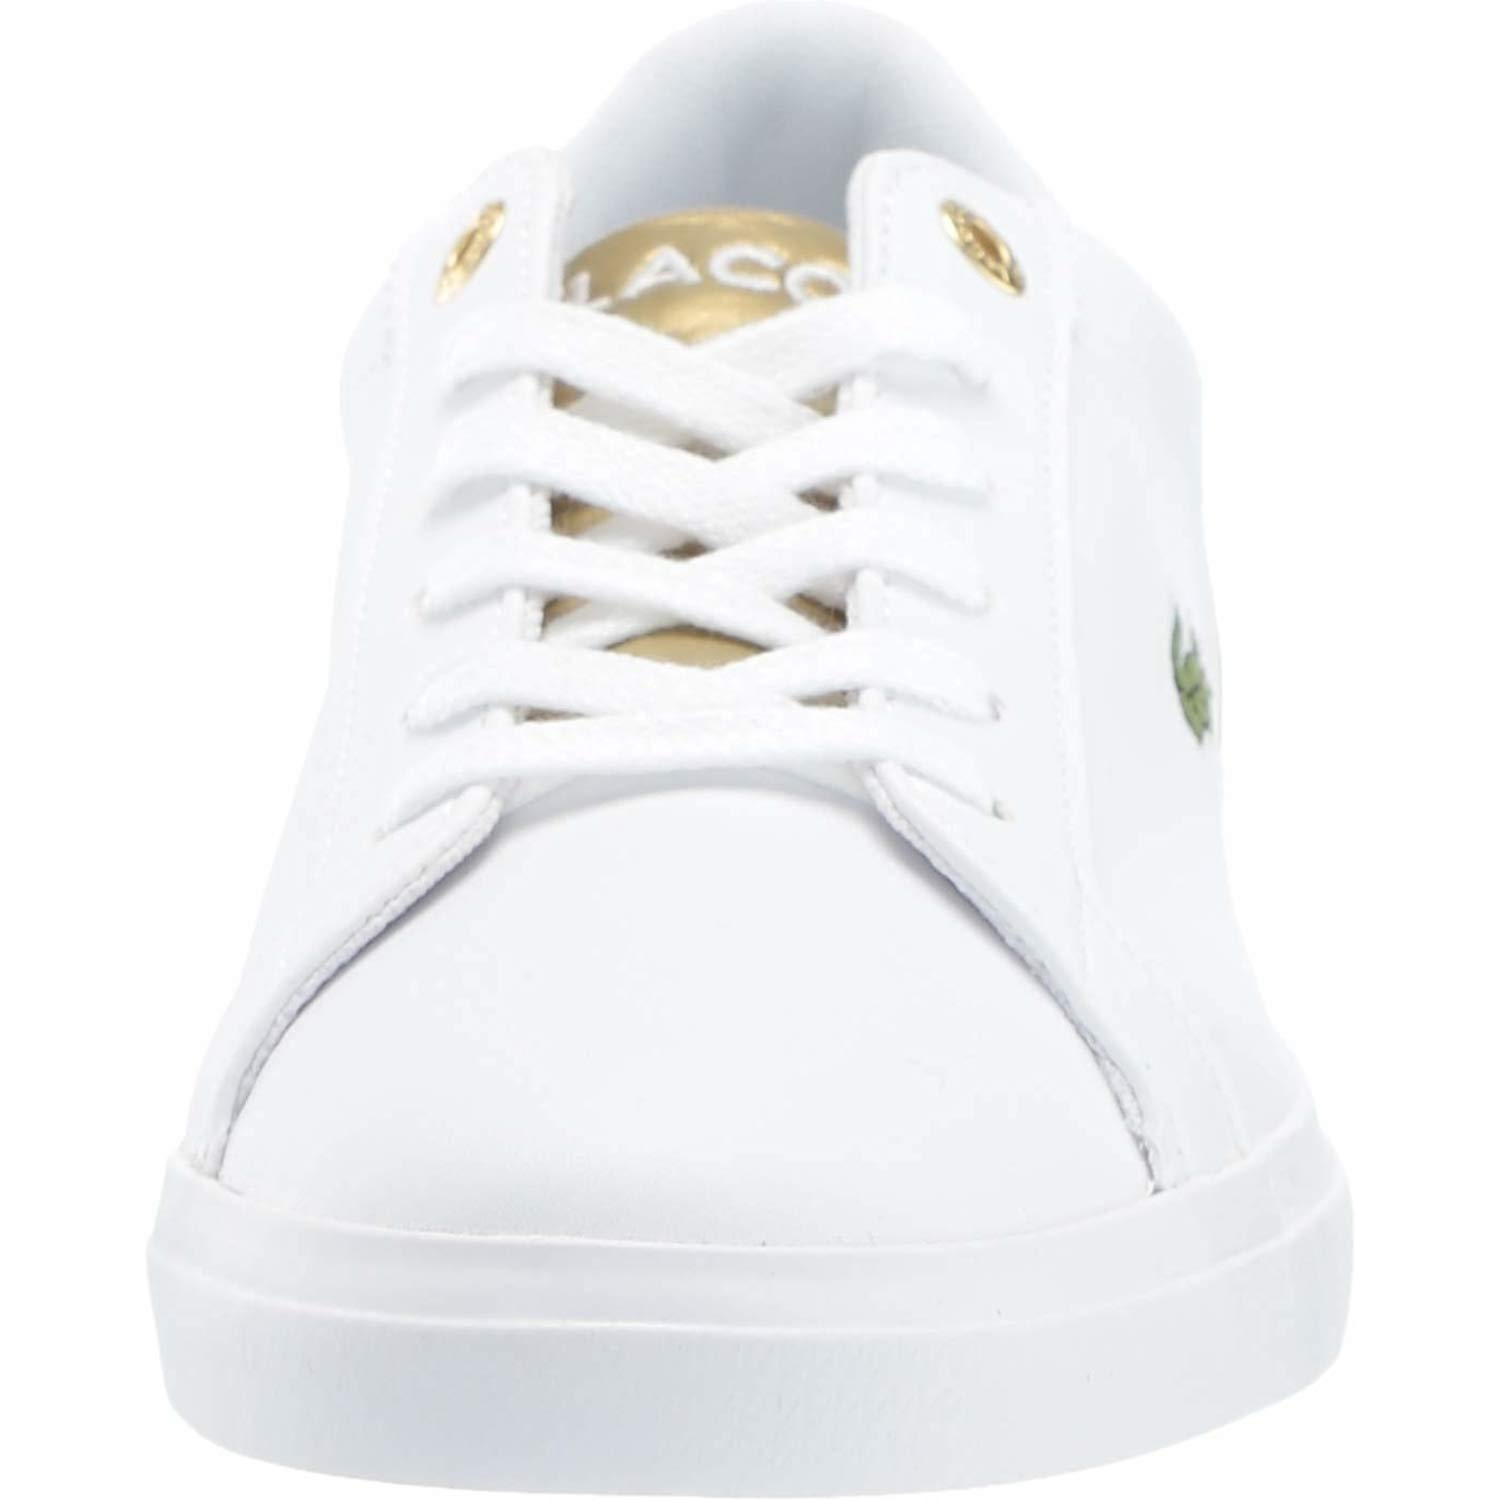 ad4a2edccb202 Lacoste Lerond 318 3 White/Gold Synthetic 39 EU: Amazon.co.uk: Shoes & Bags